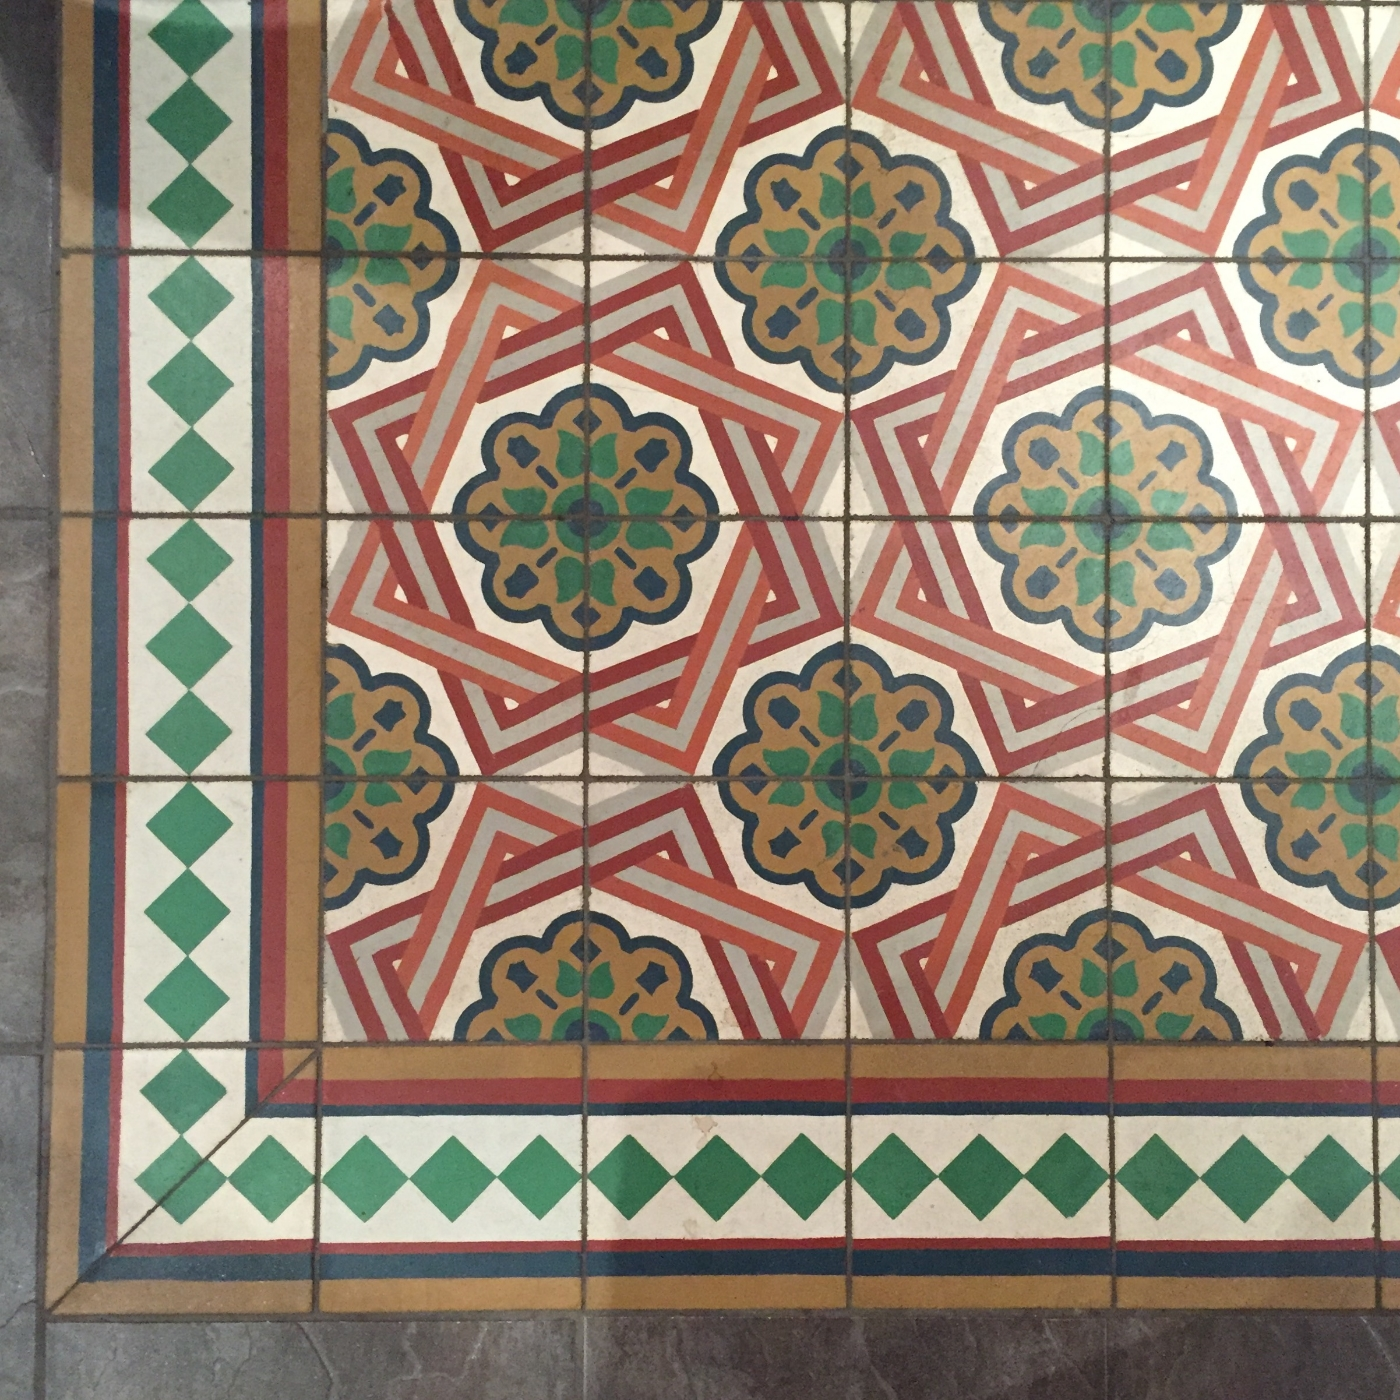 Tile Floor as Quilt Inspiration